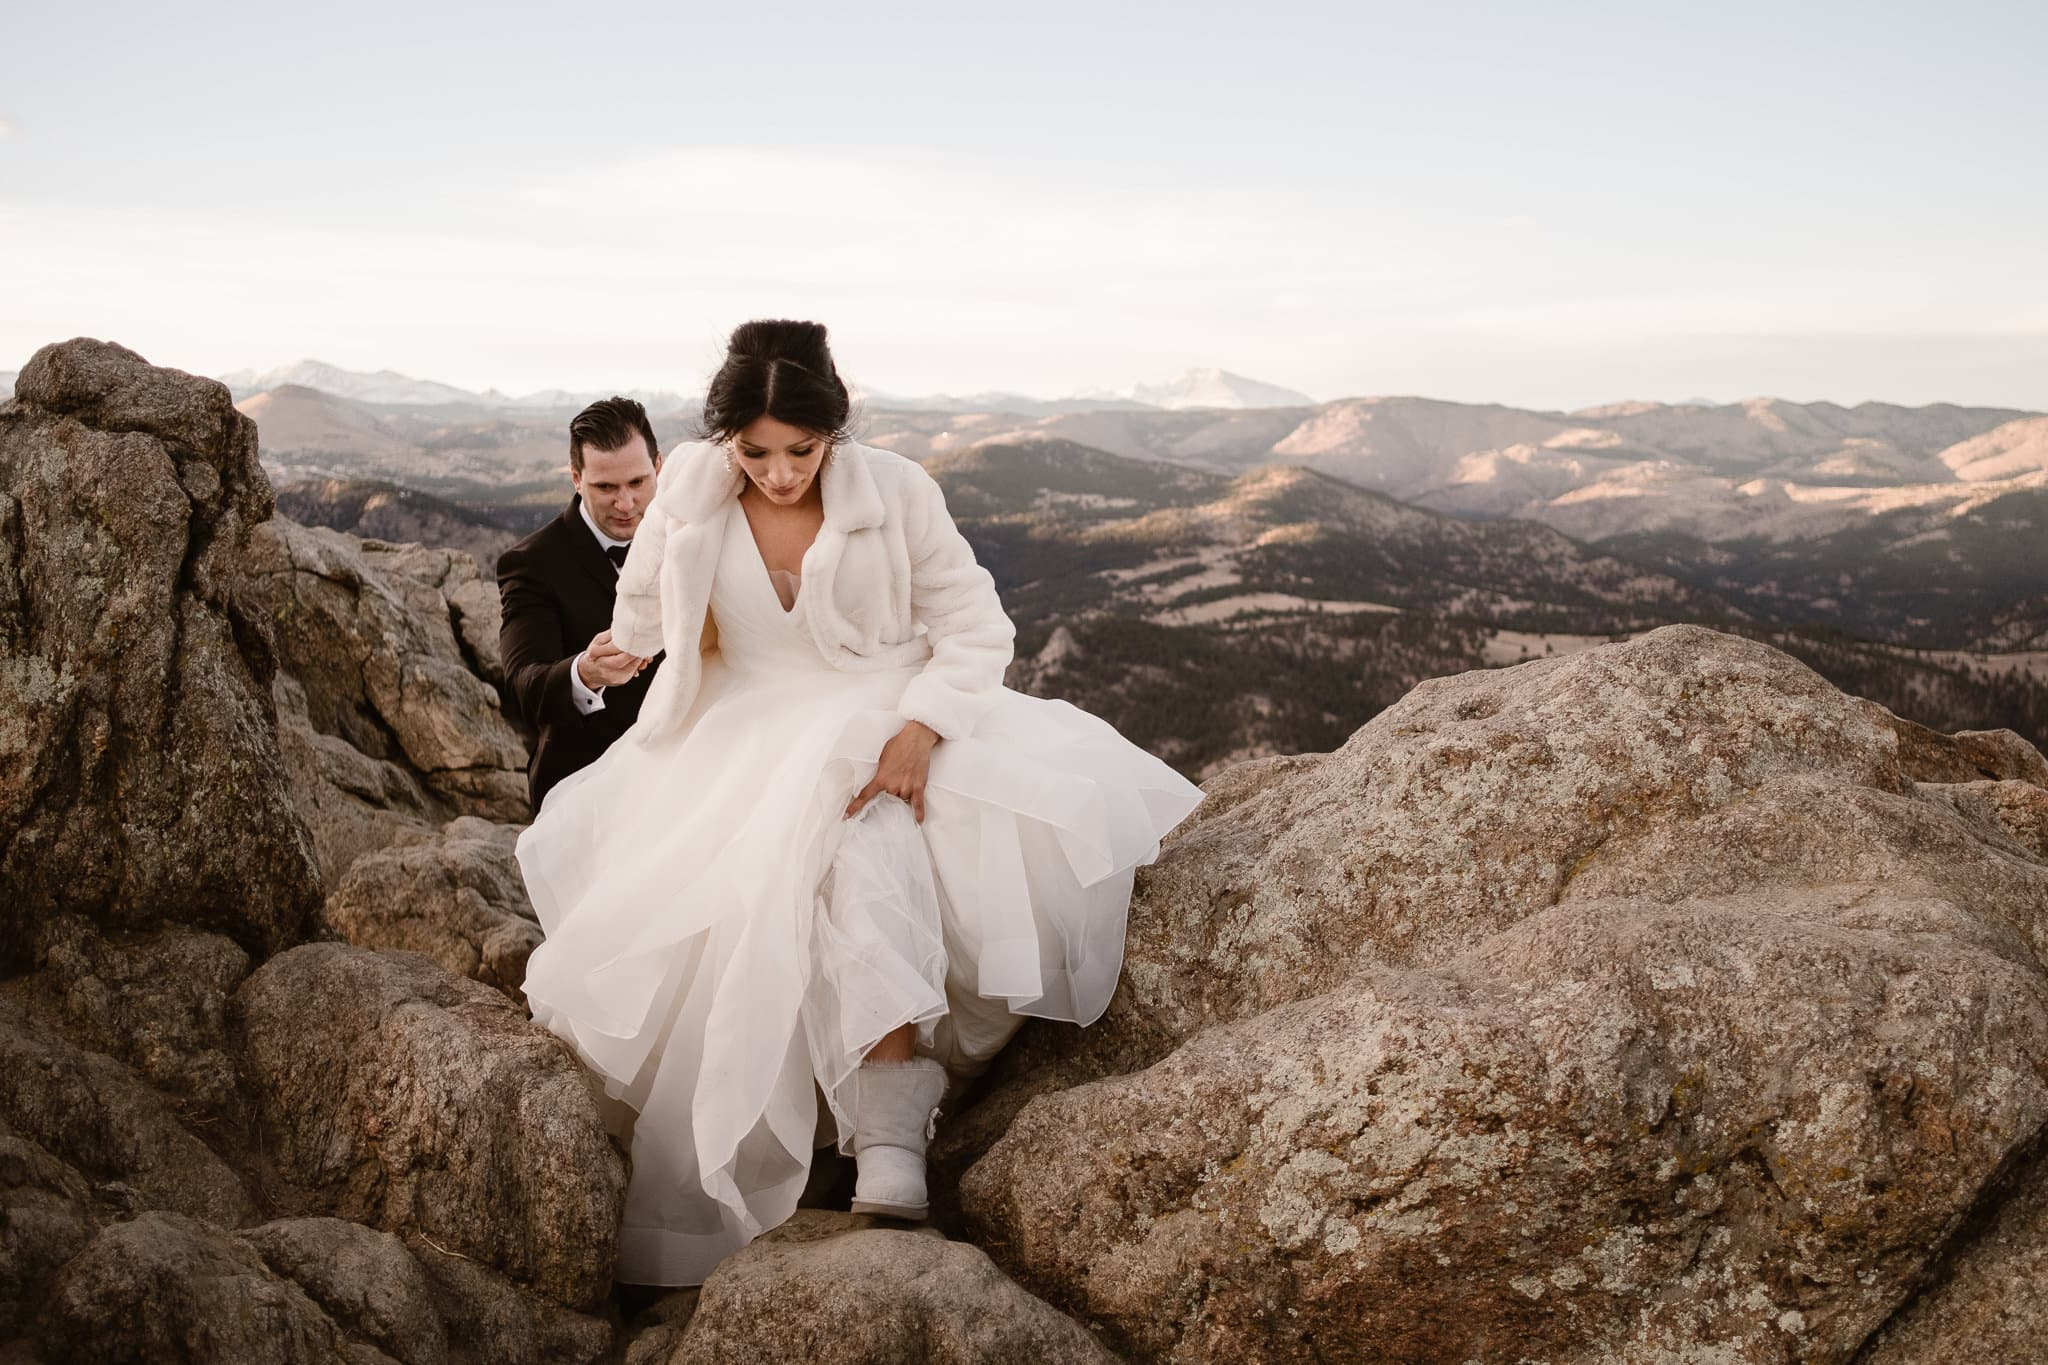 Lost Gulch wedding portraits of bride and groom, St Julien wedding with mountain portraits at sunset, Boulder wedding photographer, Colorado wedding photographer, bride hiking in Uggs